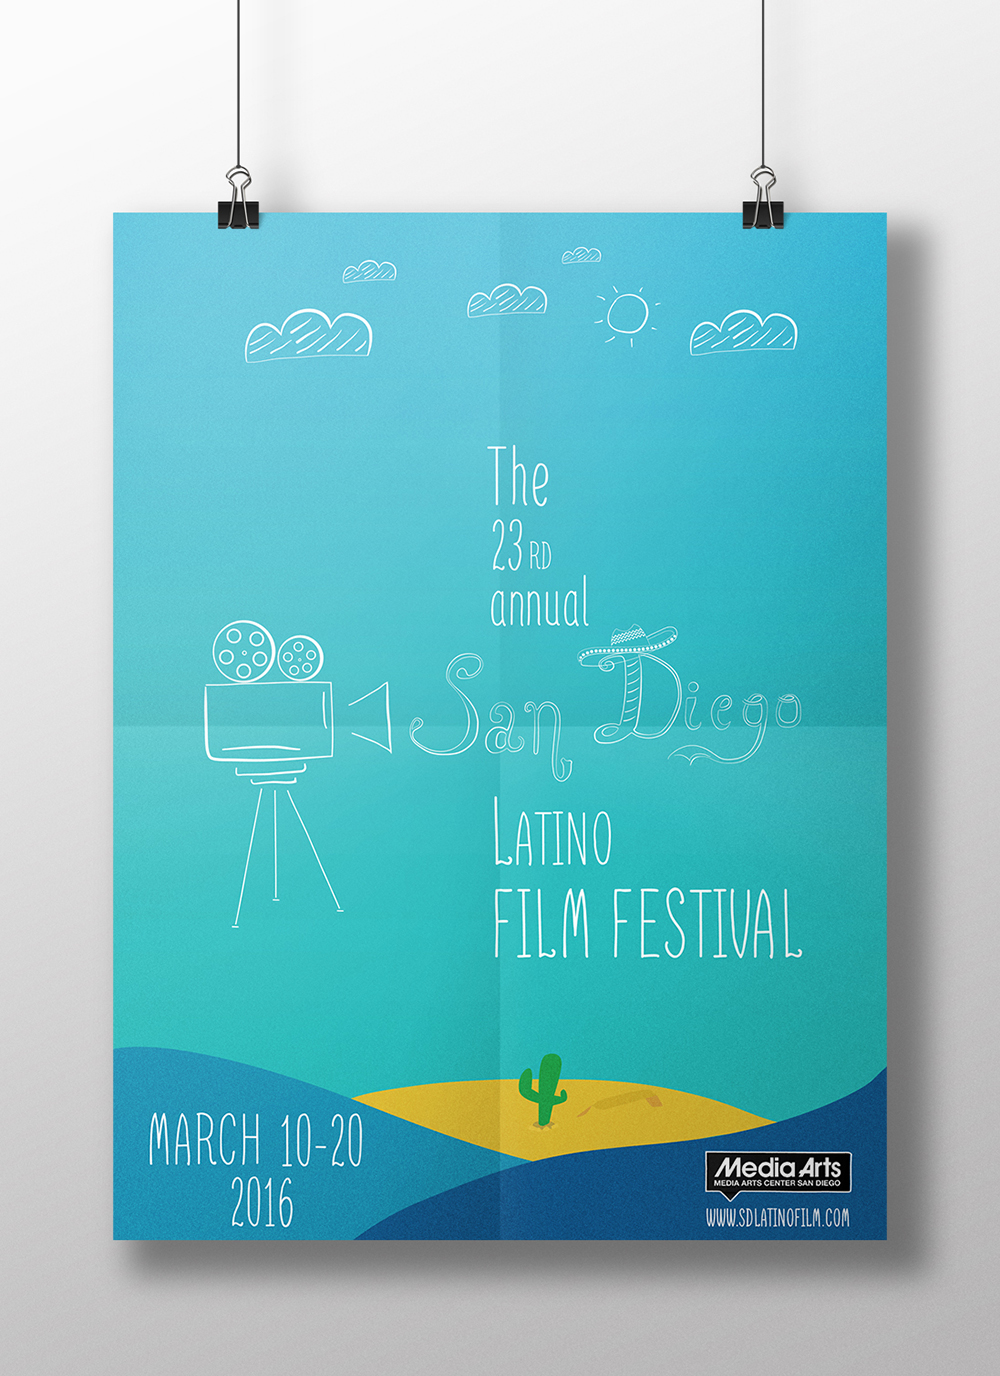 San Diego Latino Film Festival 2015 - Poster Competition